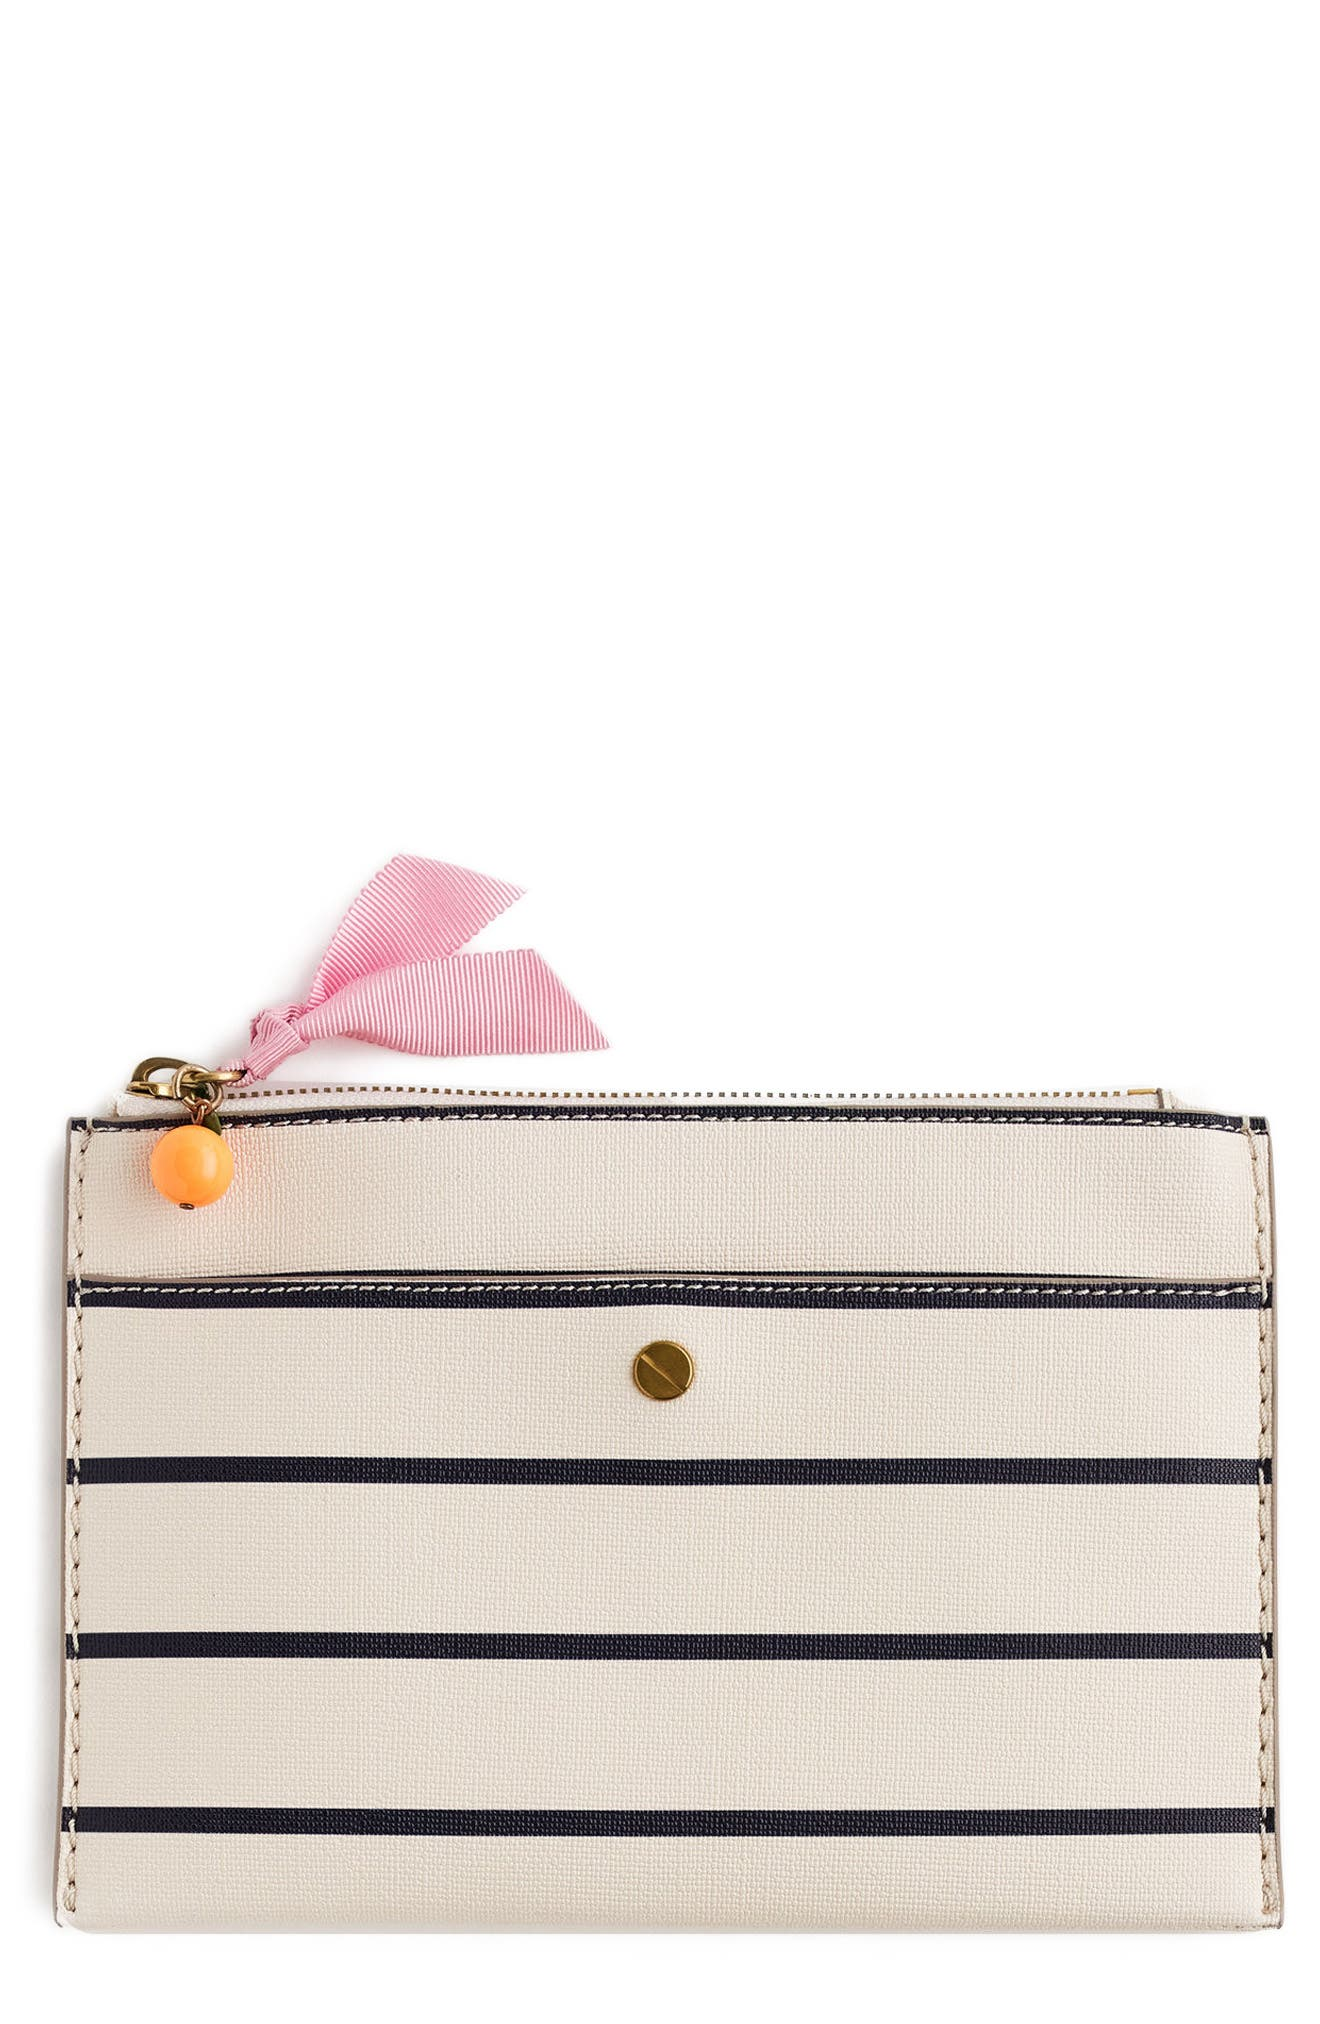 J.Crew Medium Stripe Zip Top Pouch